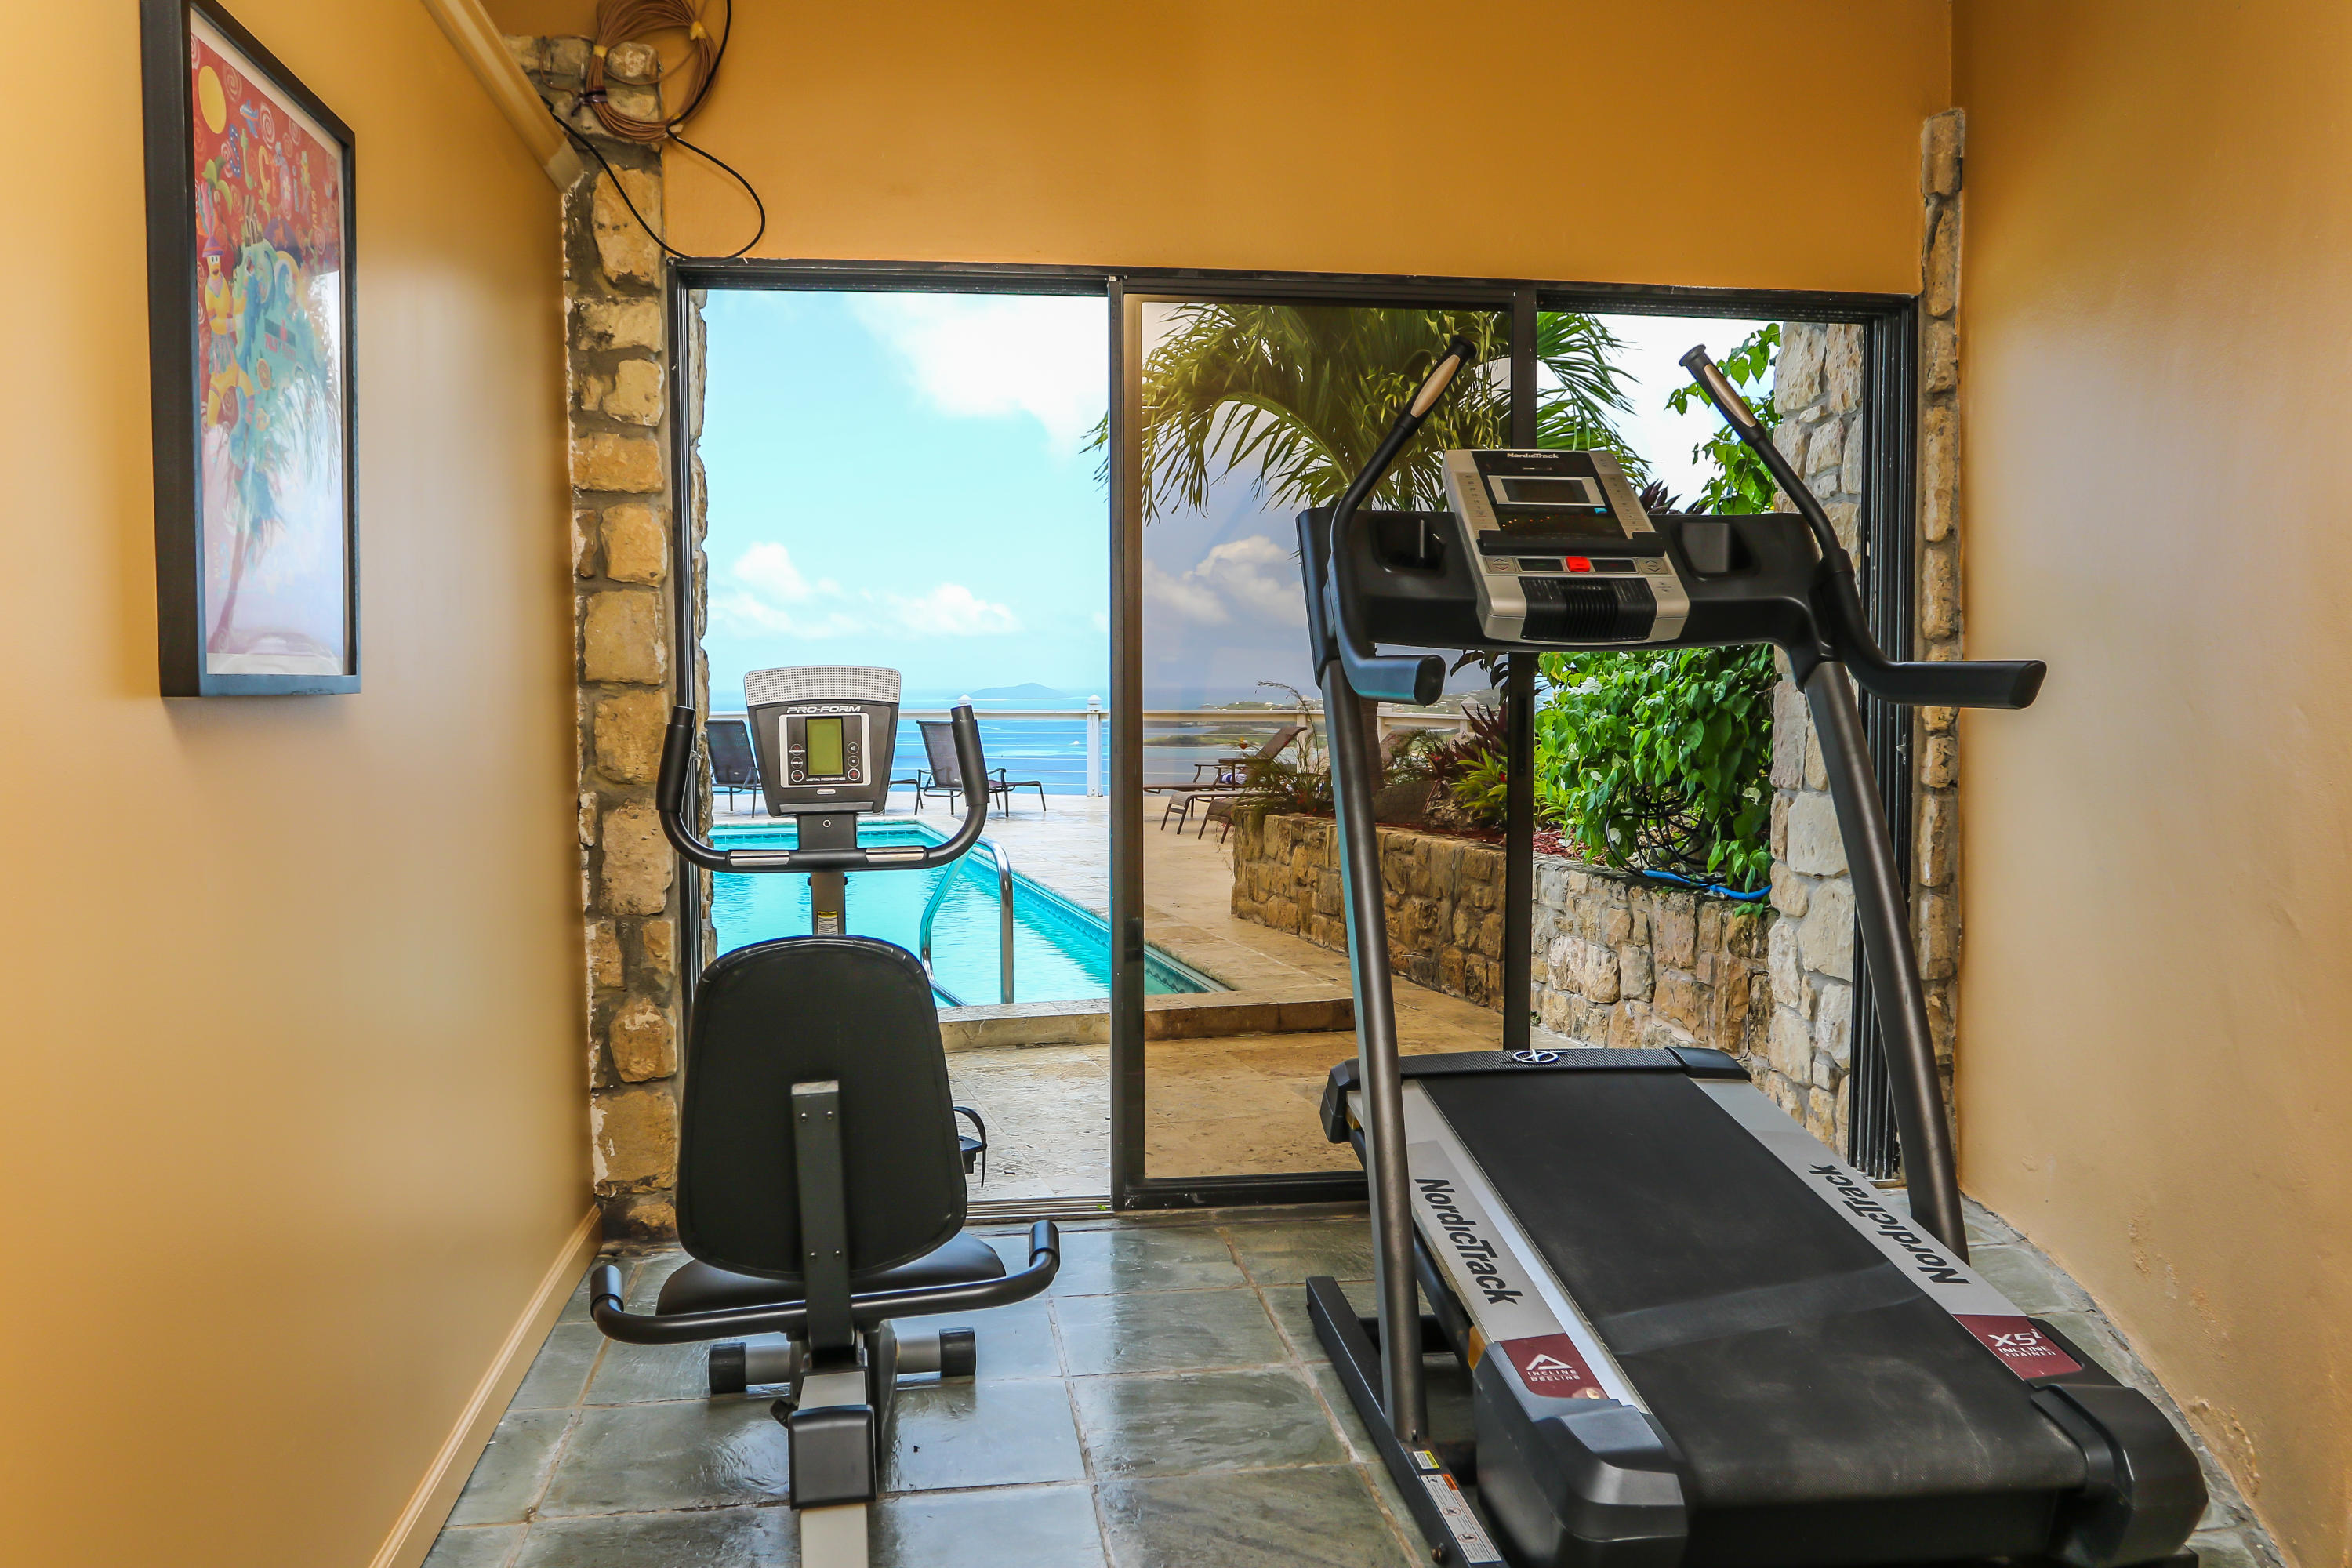 Pool House Exercise Room